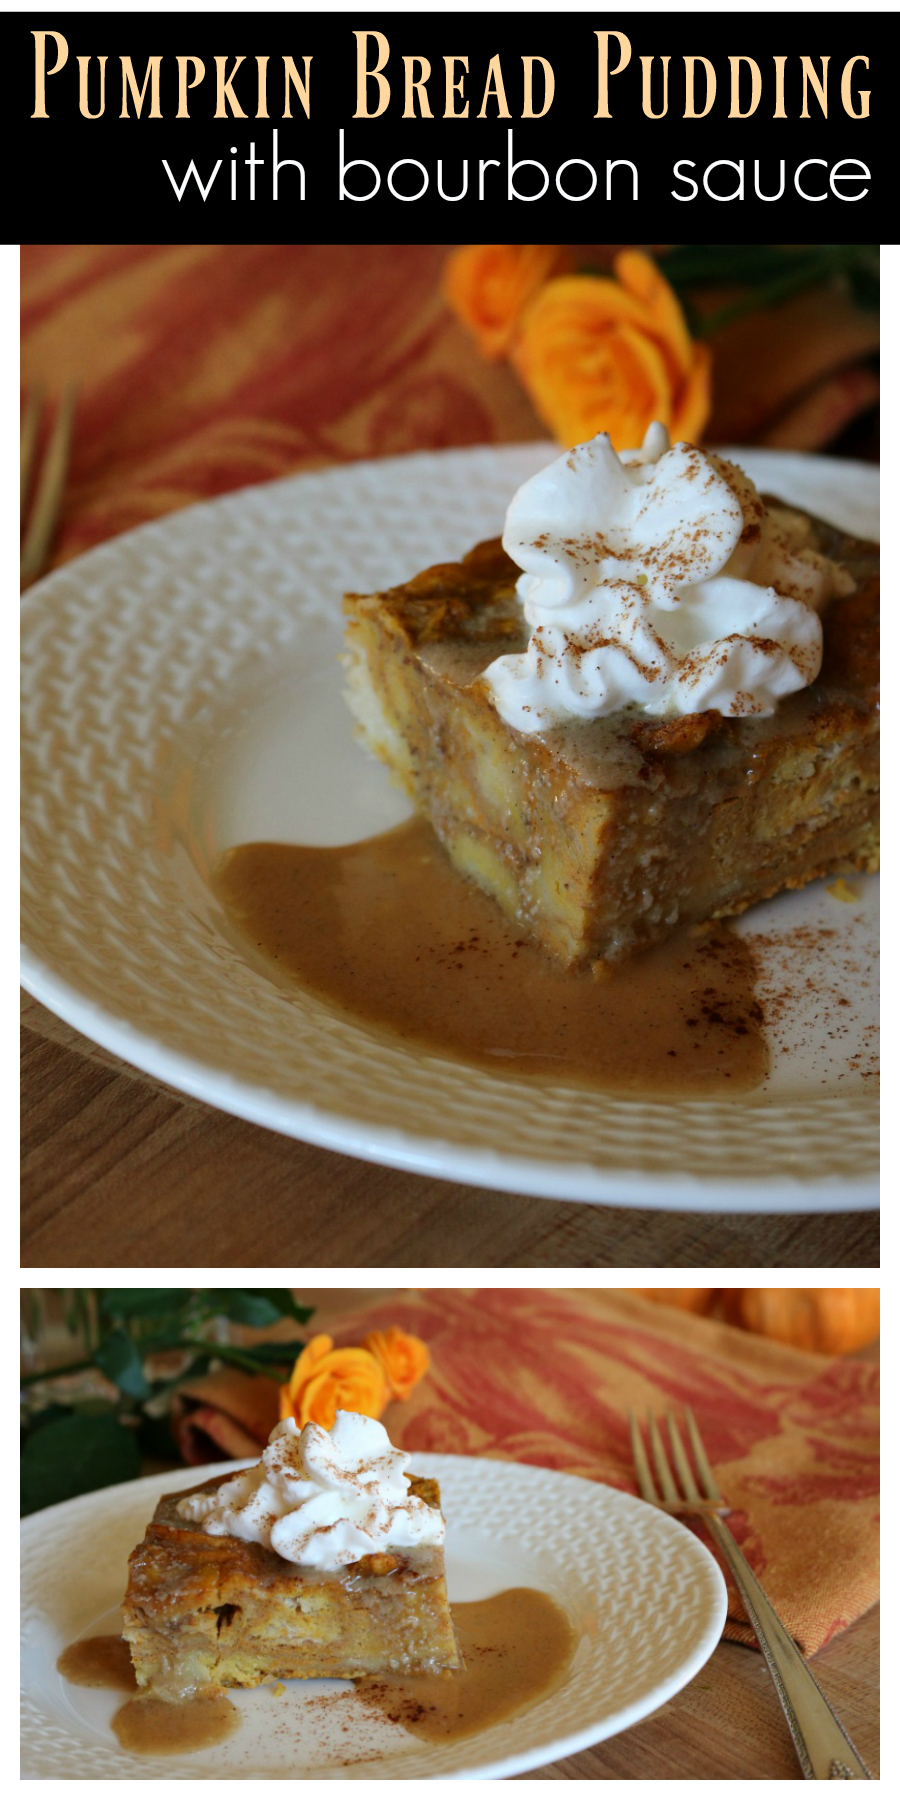 Pumpkin Bread Pudding with Bourbon Sauce CeceliasGoodStuff.com Good Food for Good People